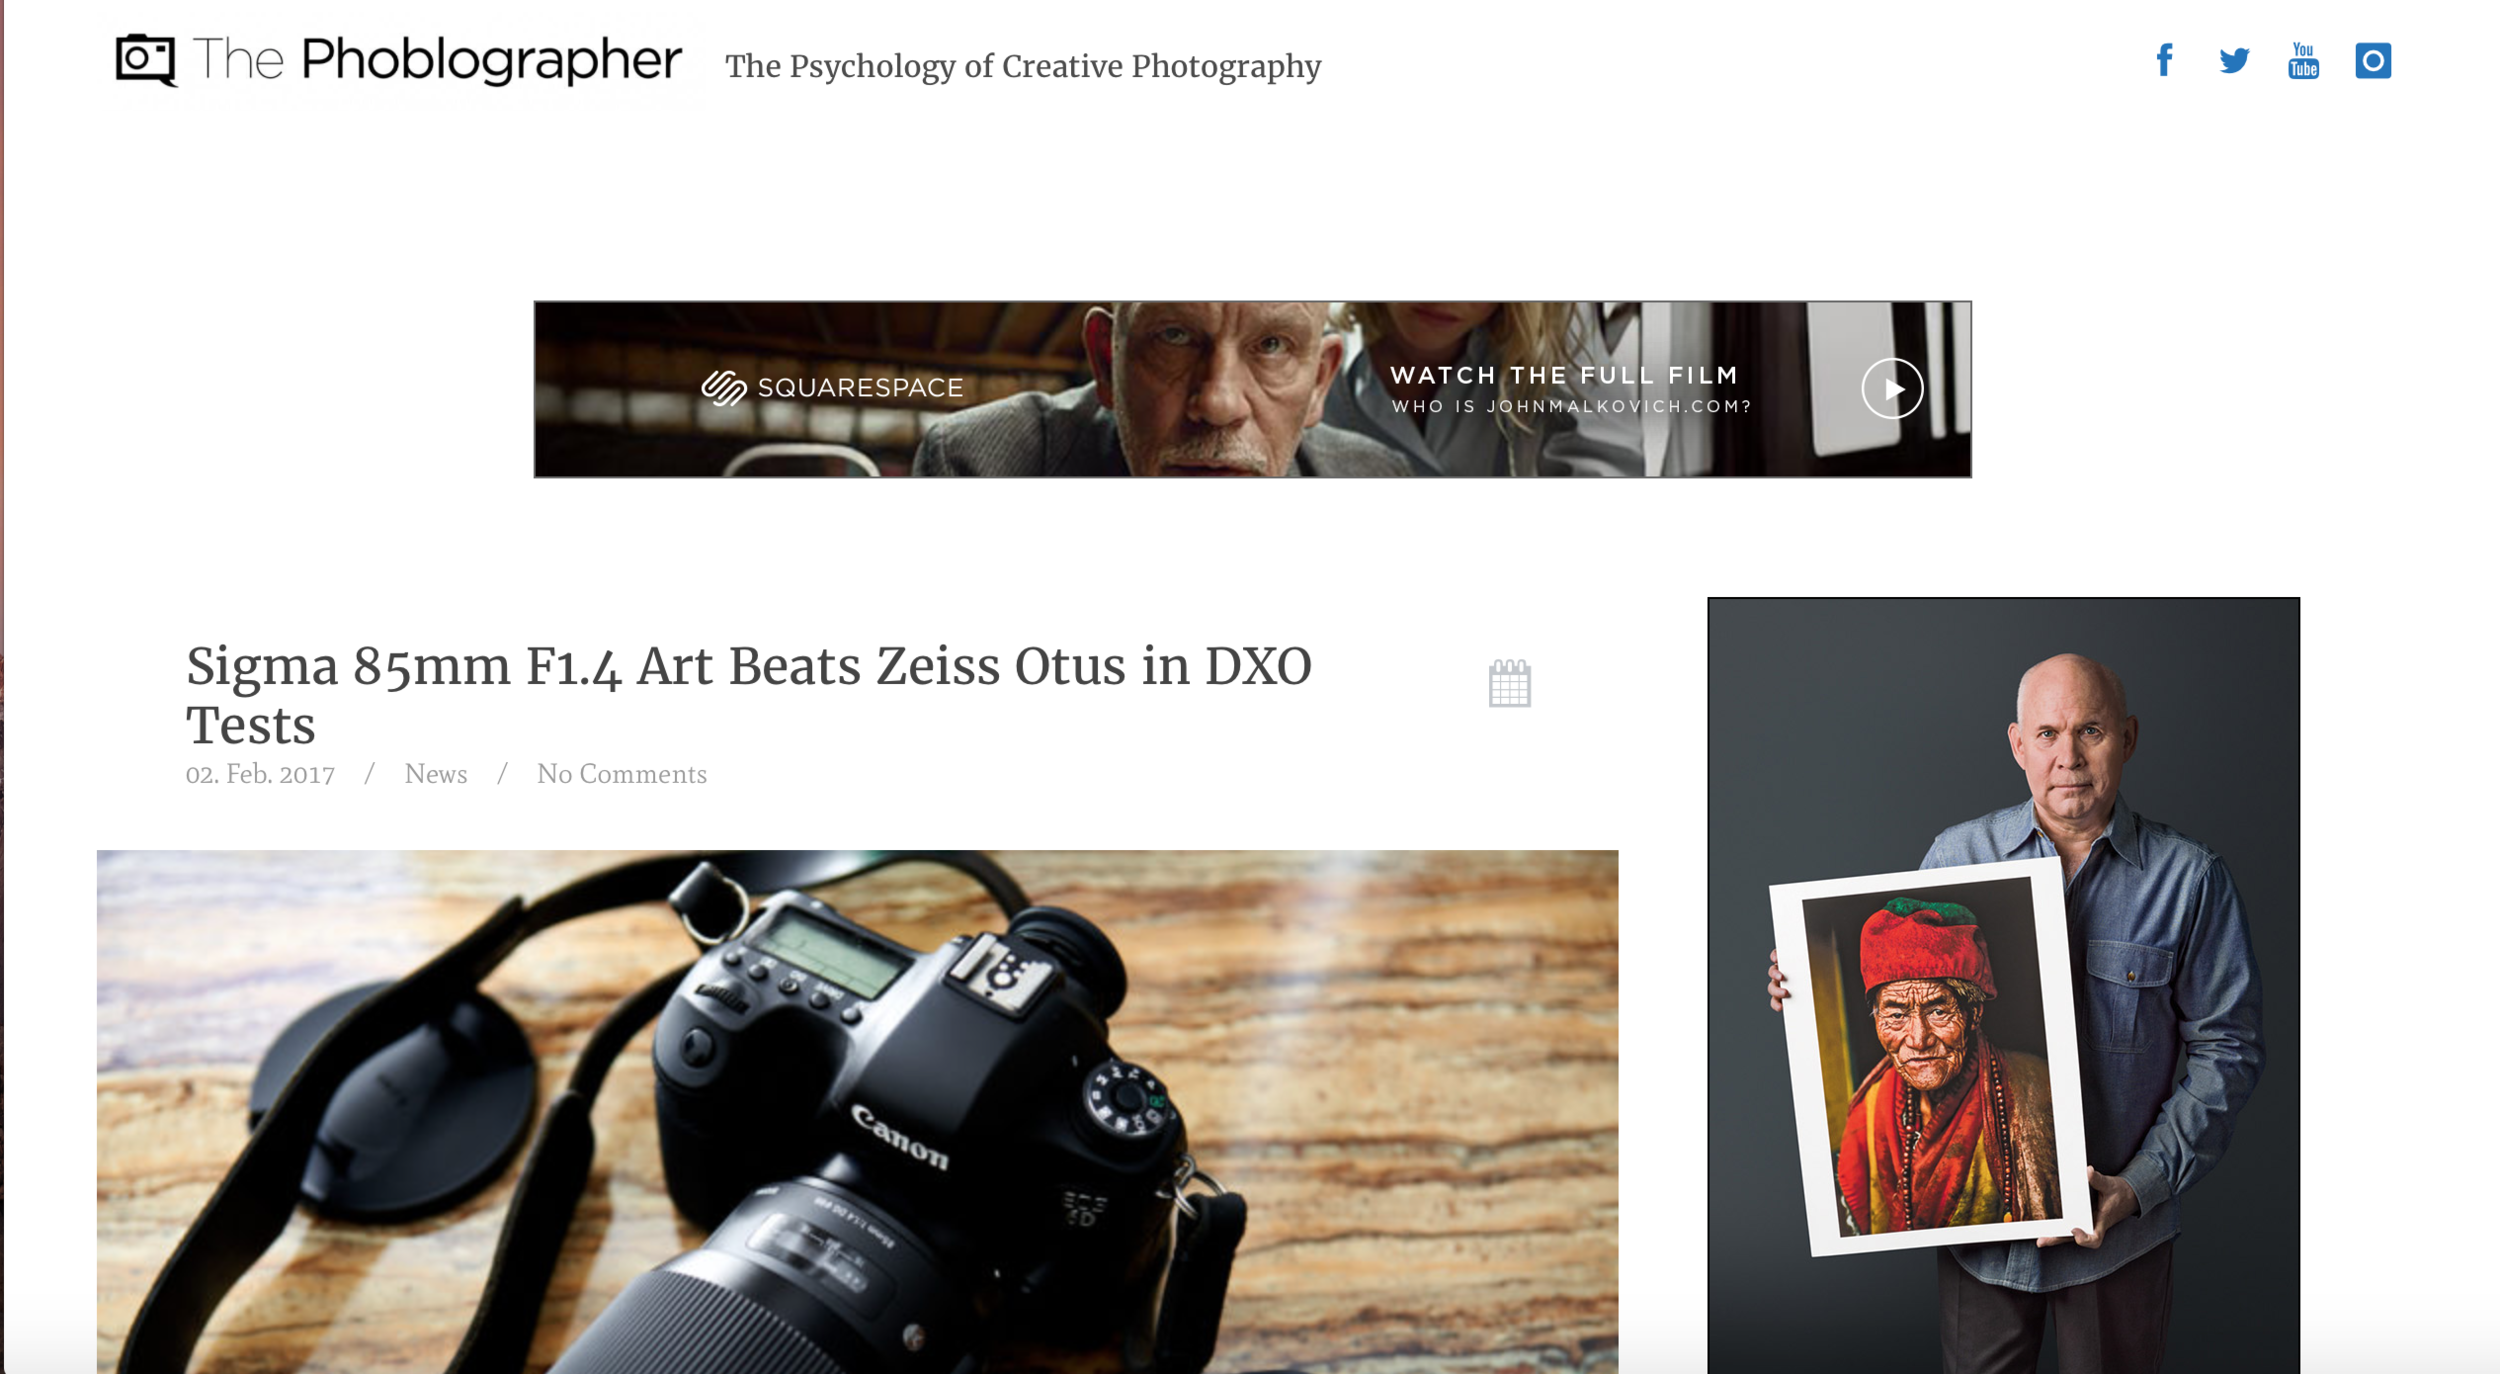 thephoblographer.com is another great place for photography articles and blogs.